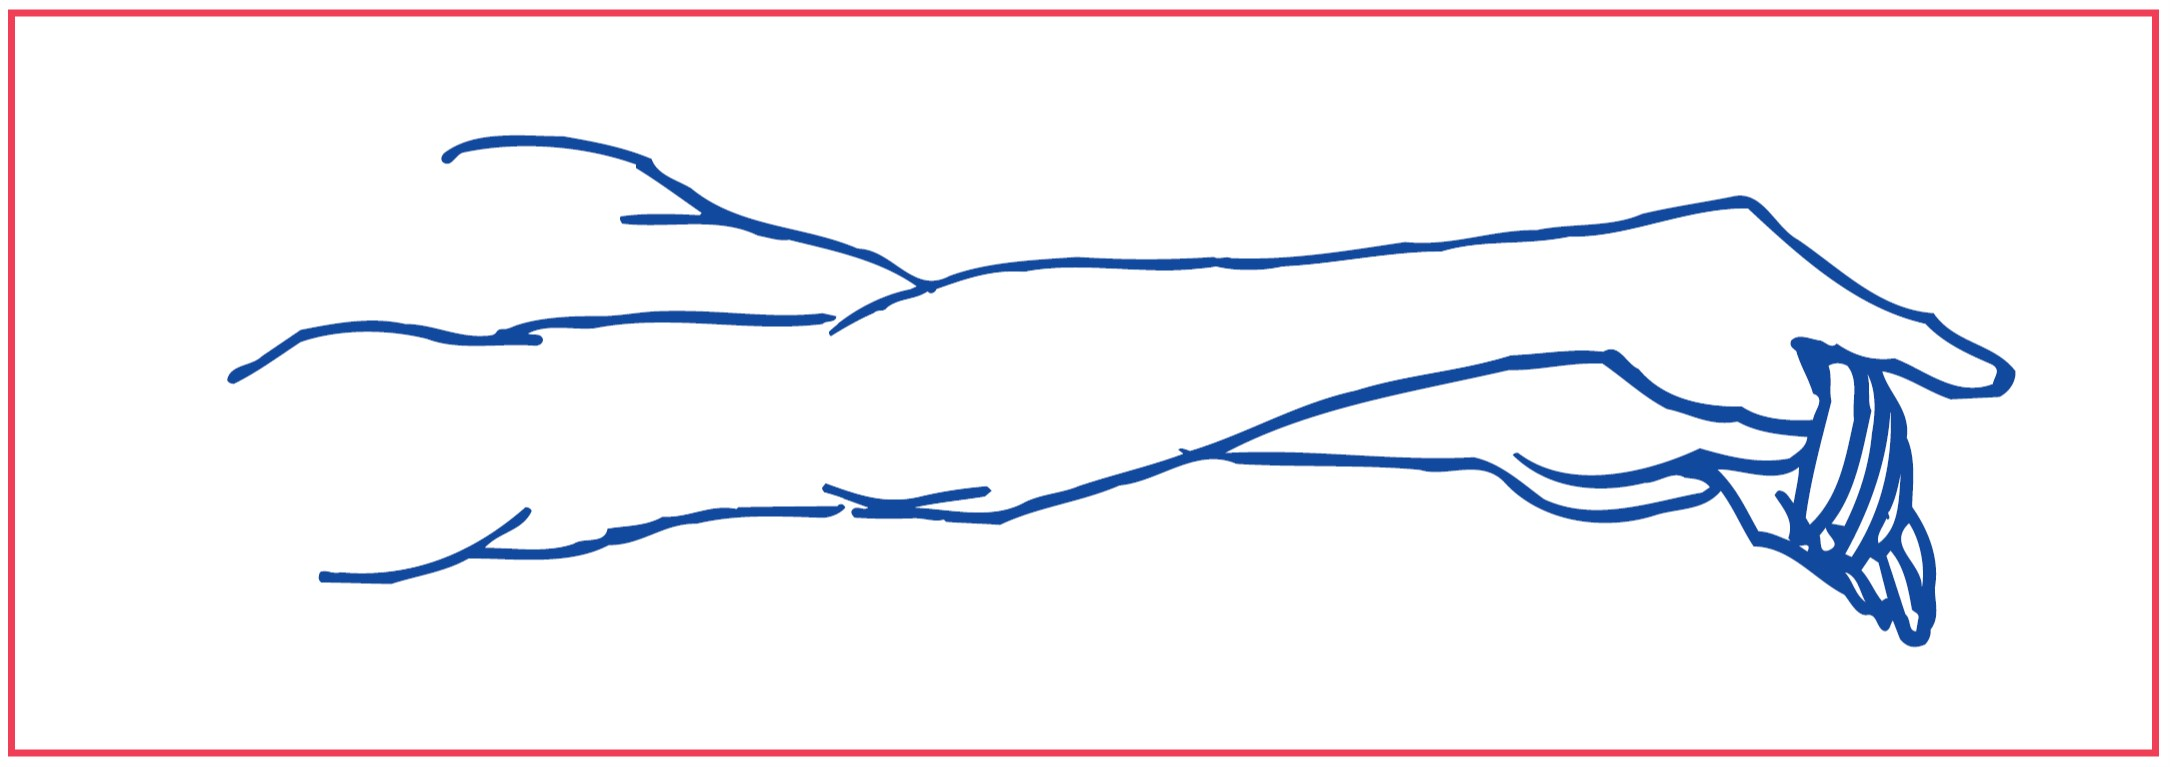 3. Stretching of muscle that bend the wrist and fingers